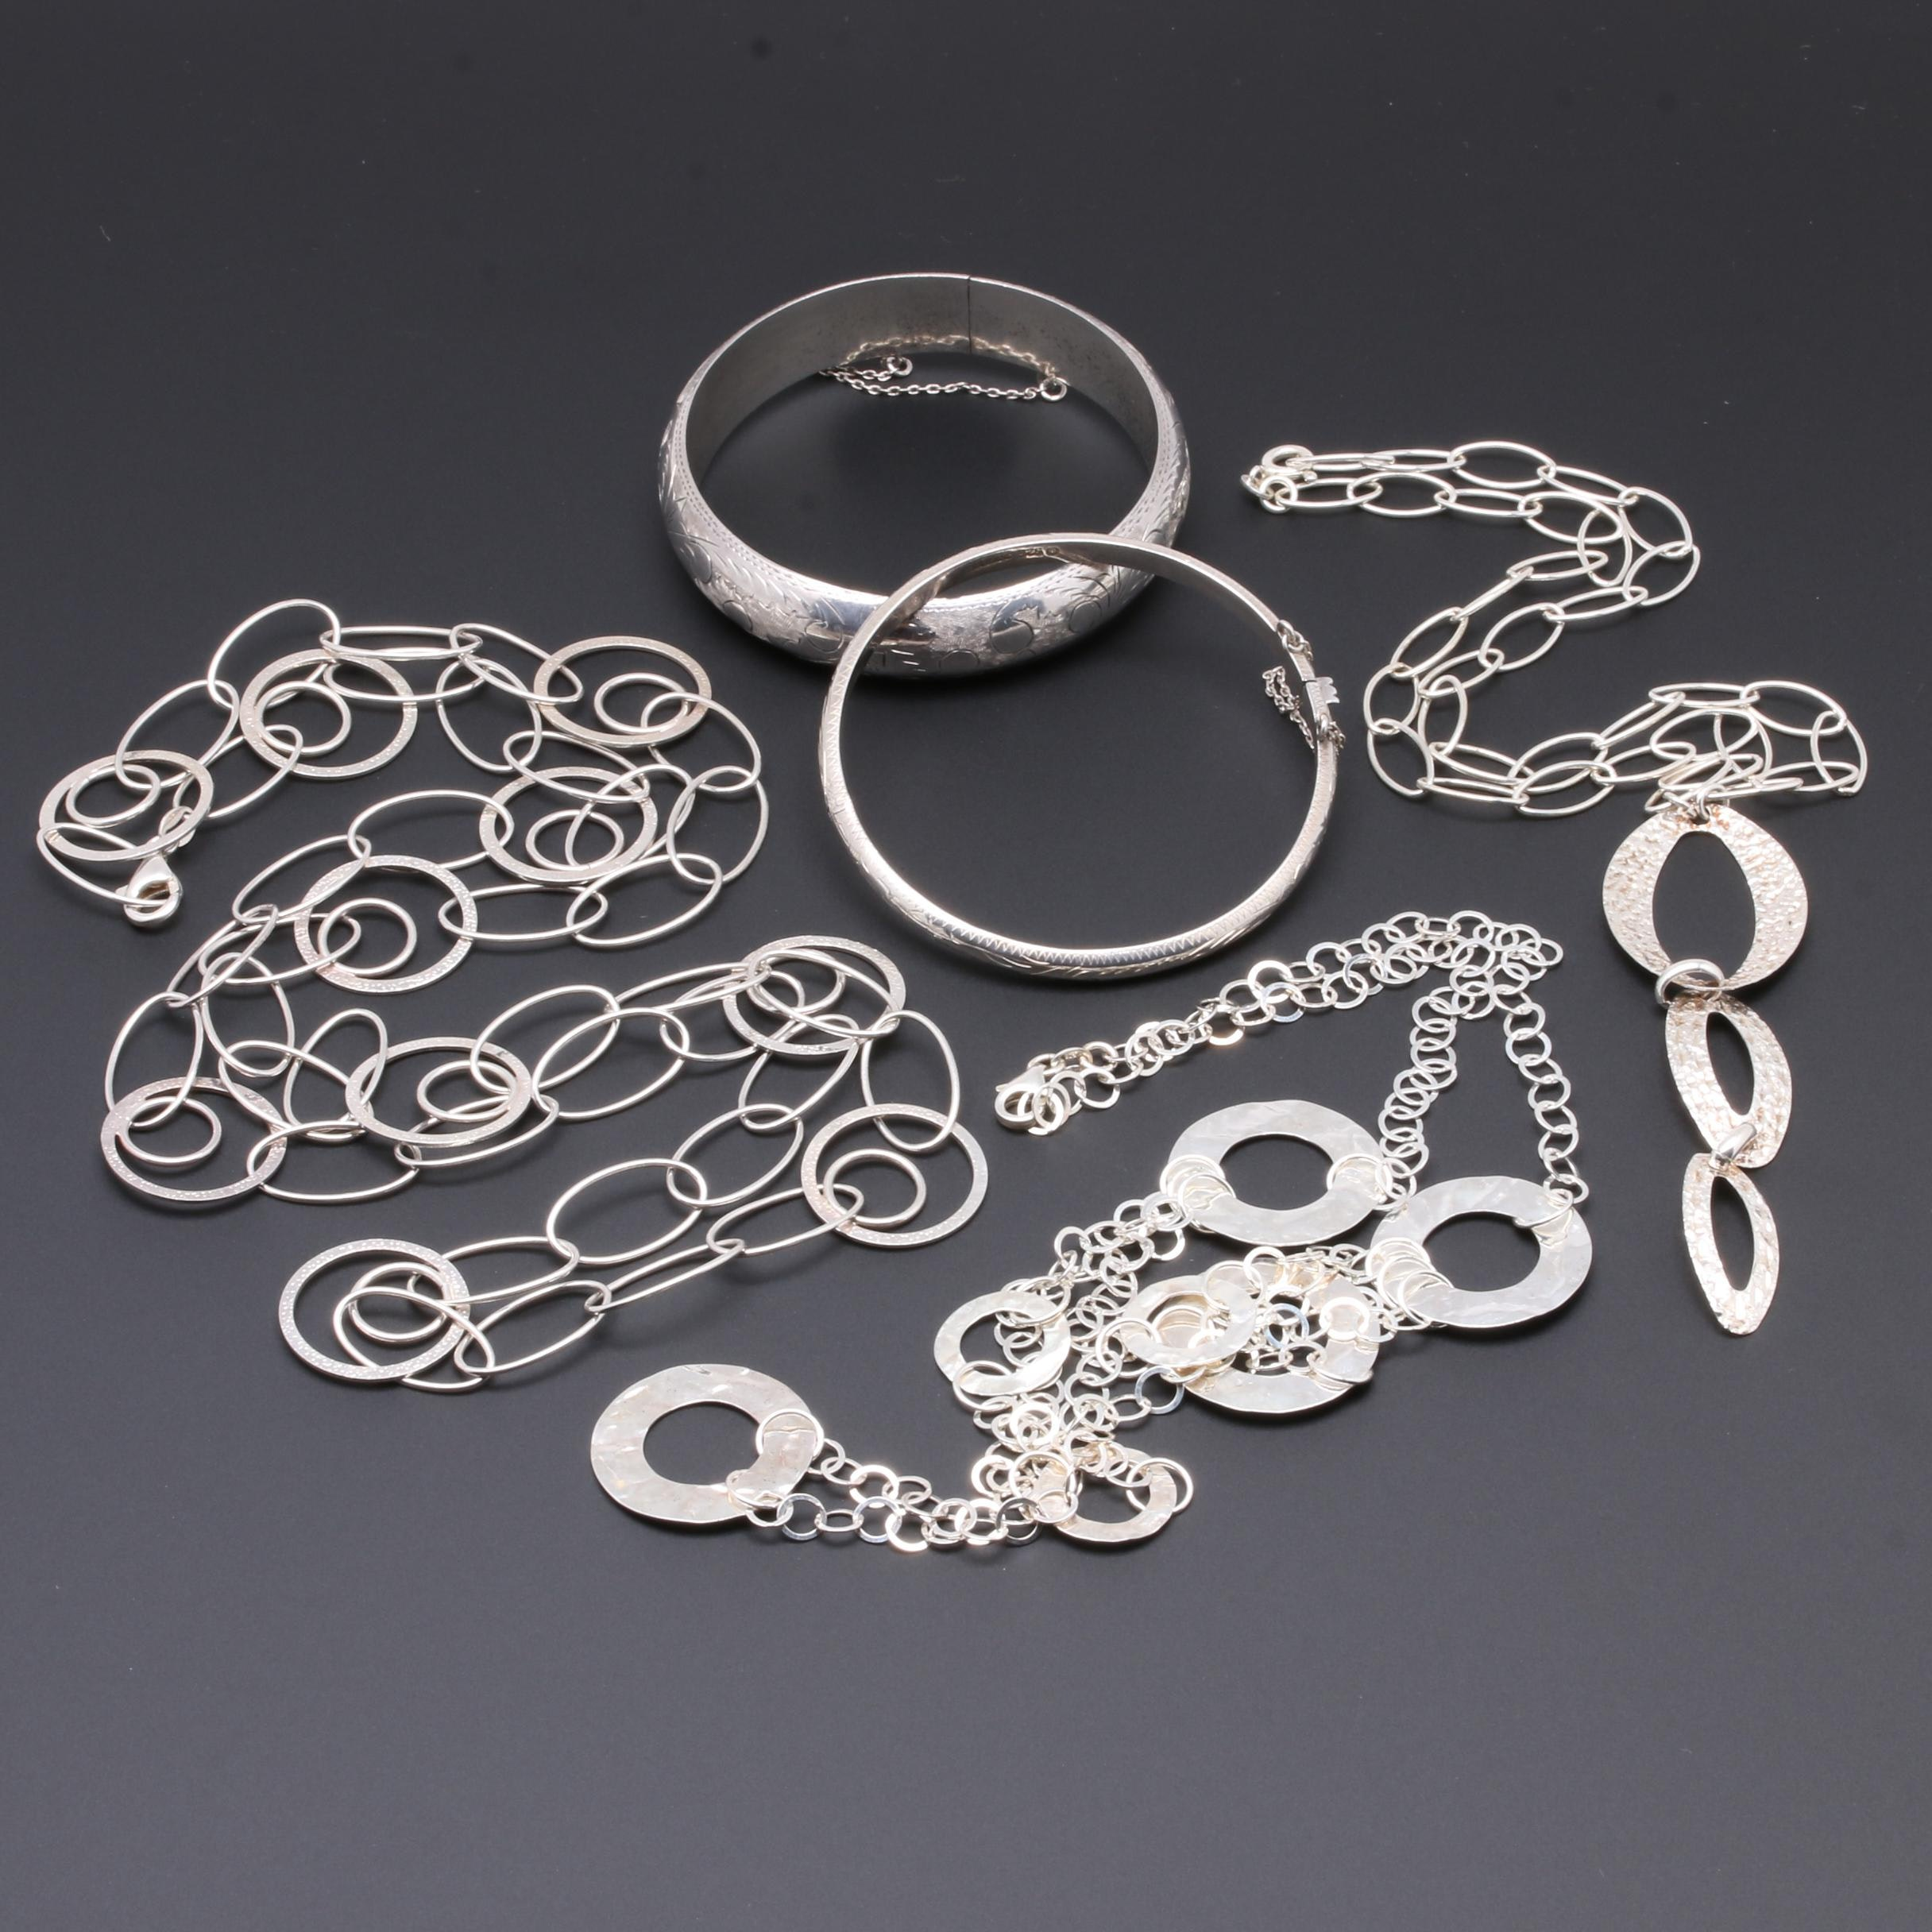 Sterling Silver Jewelry Selection Including Textured Bangles